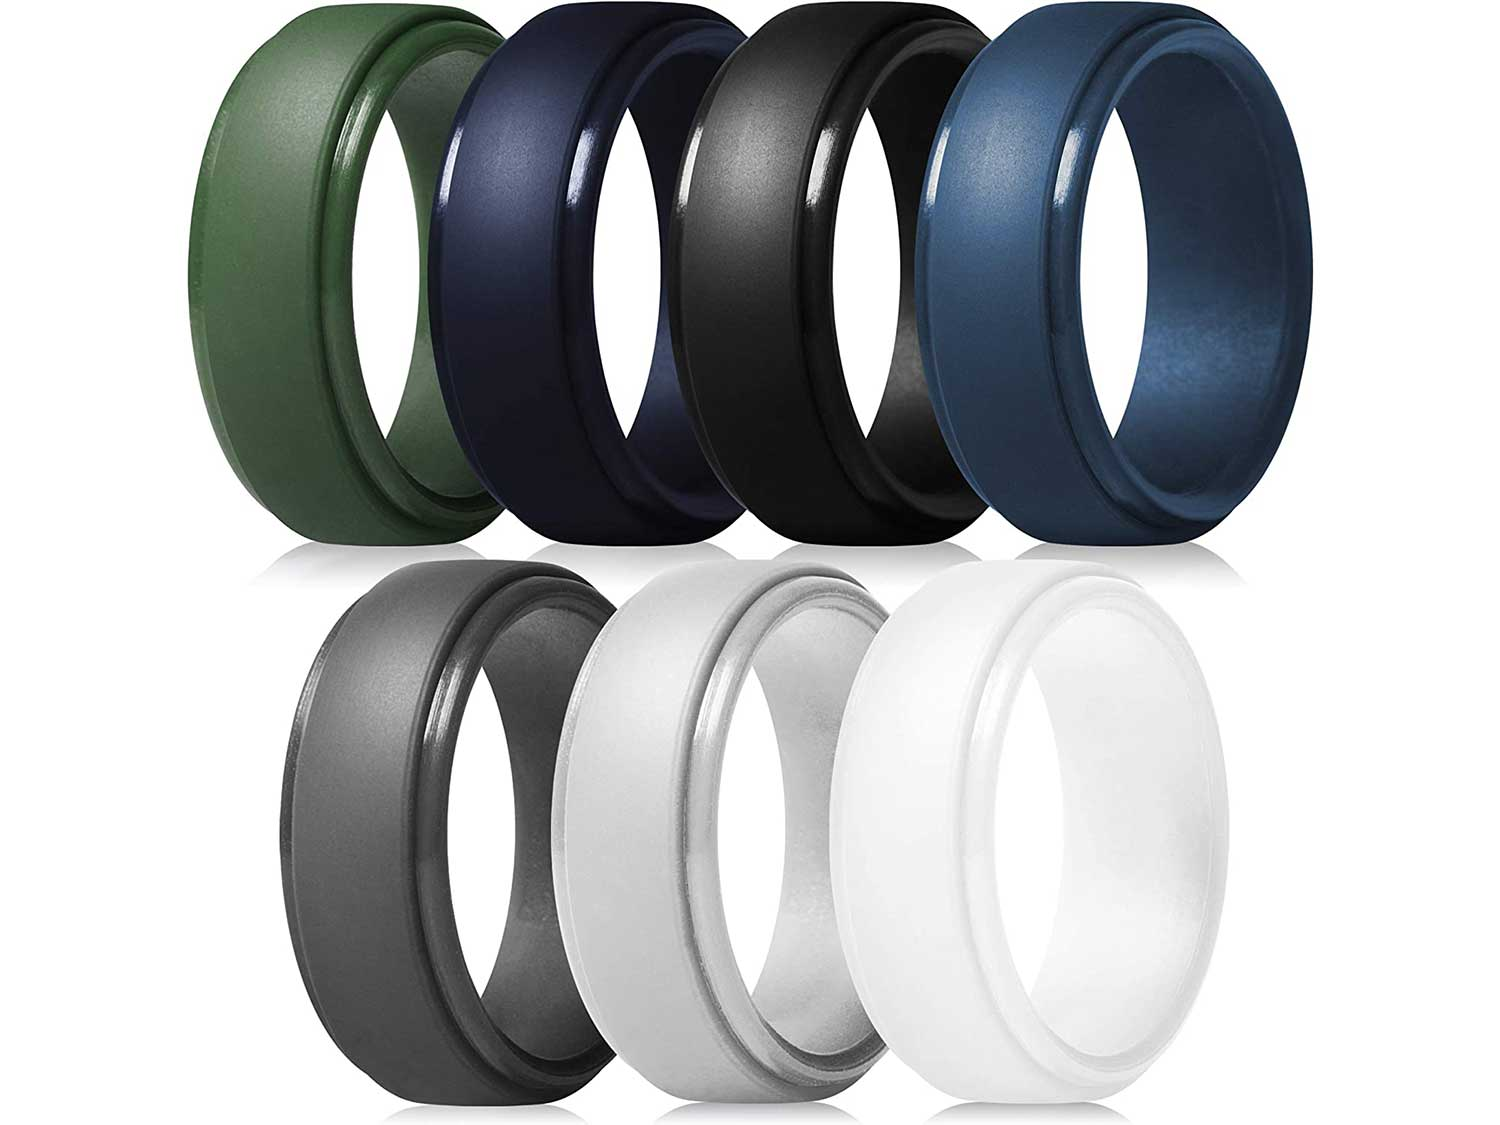 ThunderFit Silicone Rings for Men - 7 Rings / 4 Rings / 1 Ring Step Edge Rubber Wedding Bands 10mm Wide - 2.5mm Thick